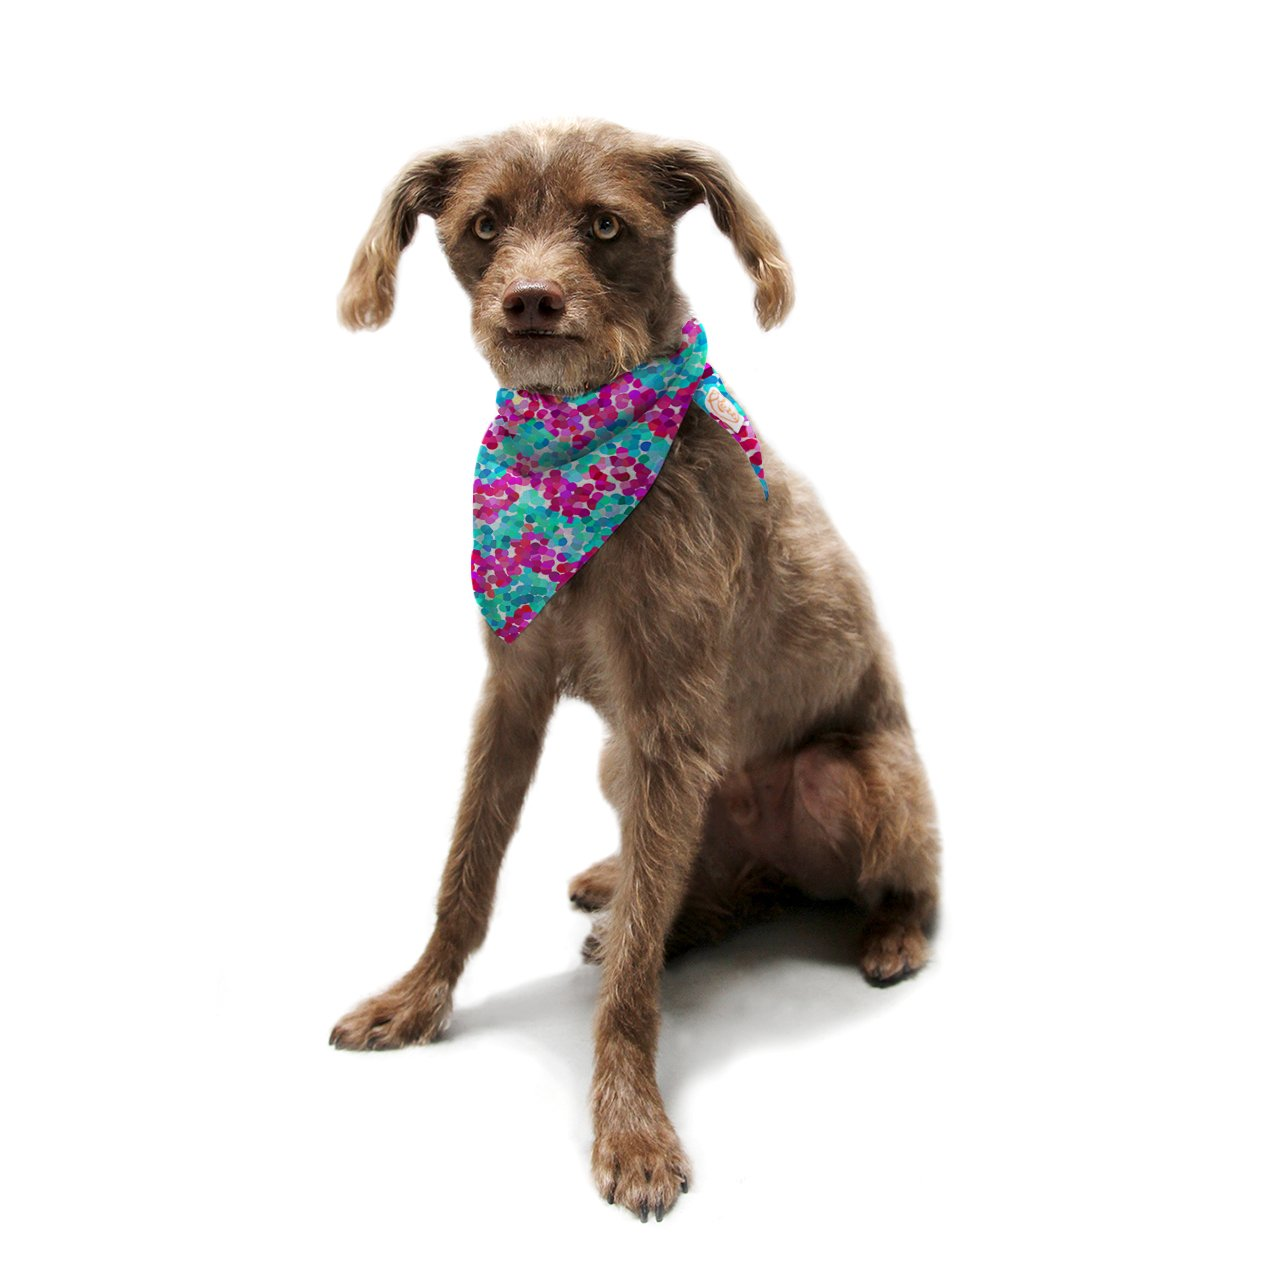 Kess InHouse Beth Engel ''Scattered'' Pet Bandana and Scarf, 28 by 20 by 20-Inch